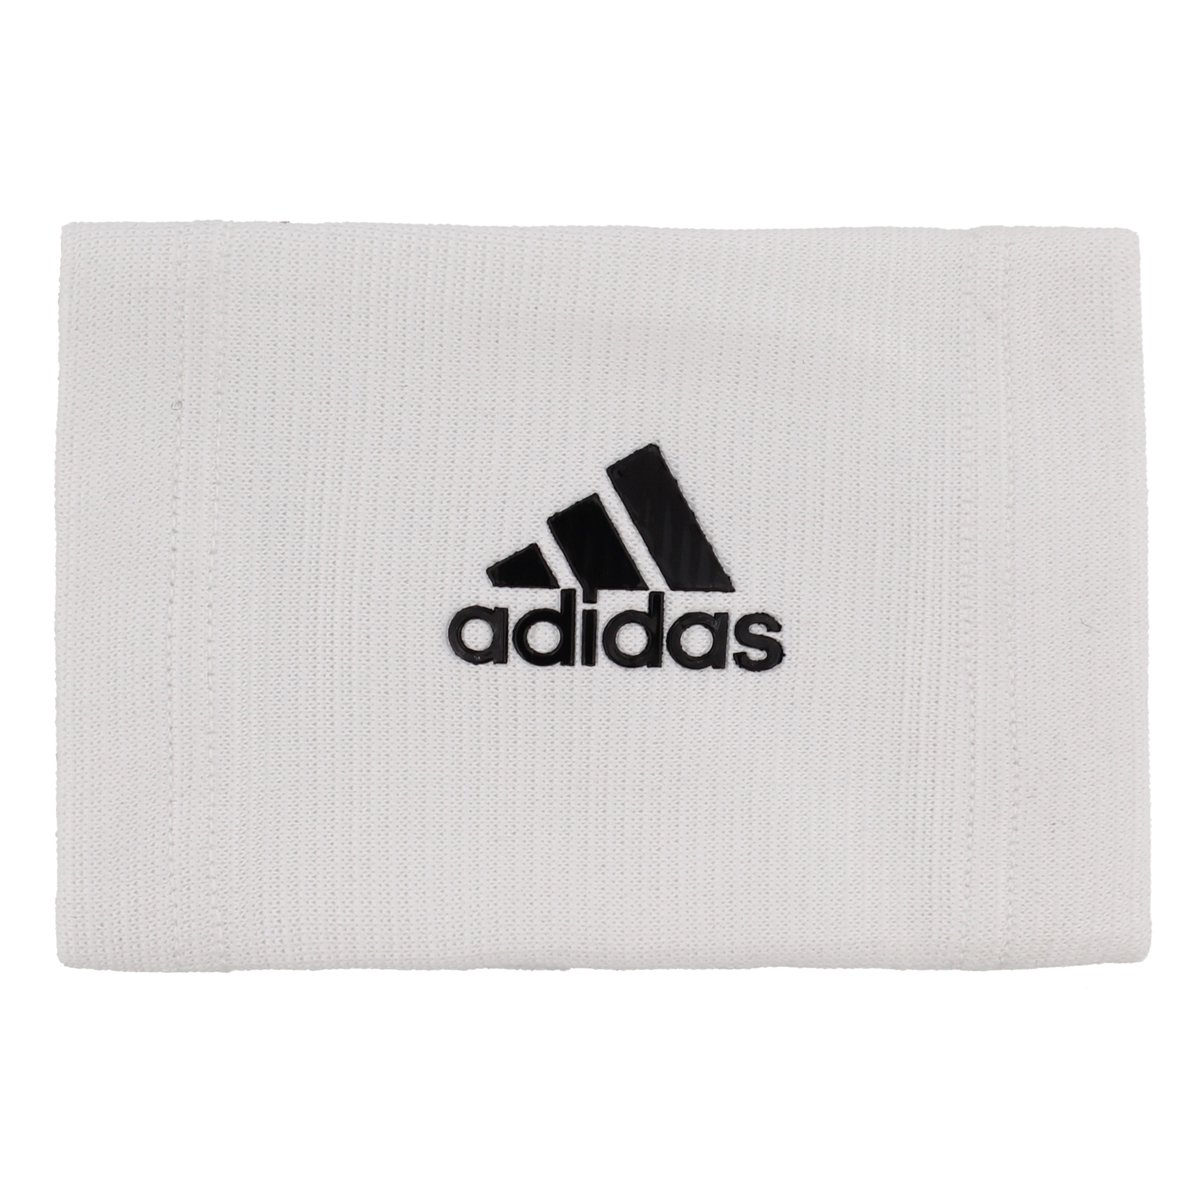 adidas Unisex Team Wrist Coach, White/Black, One Size